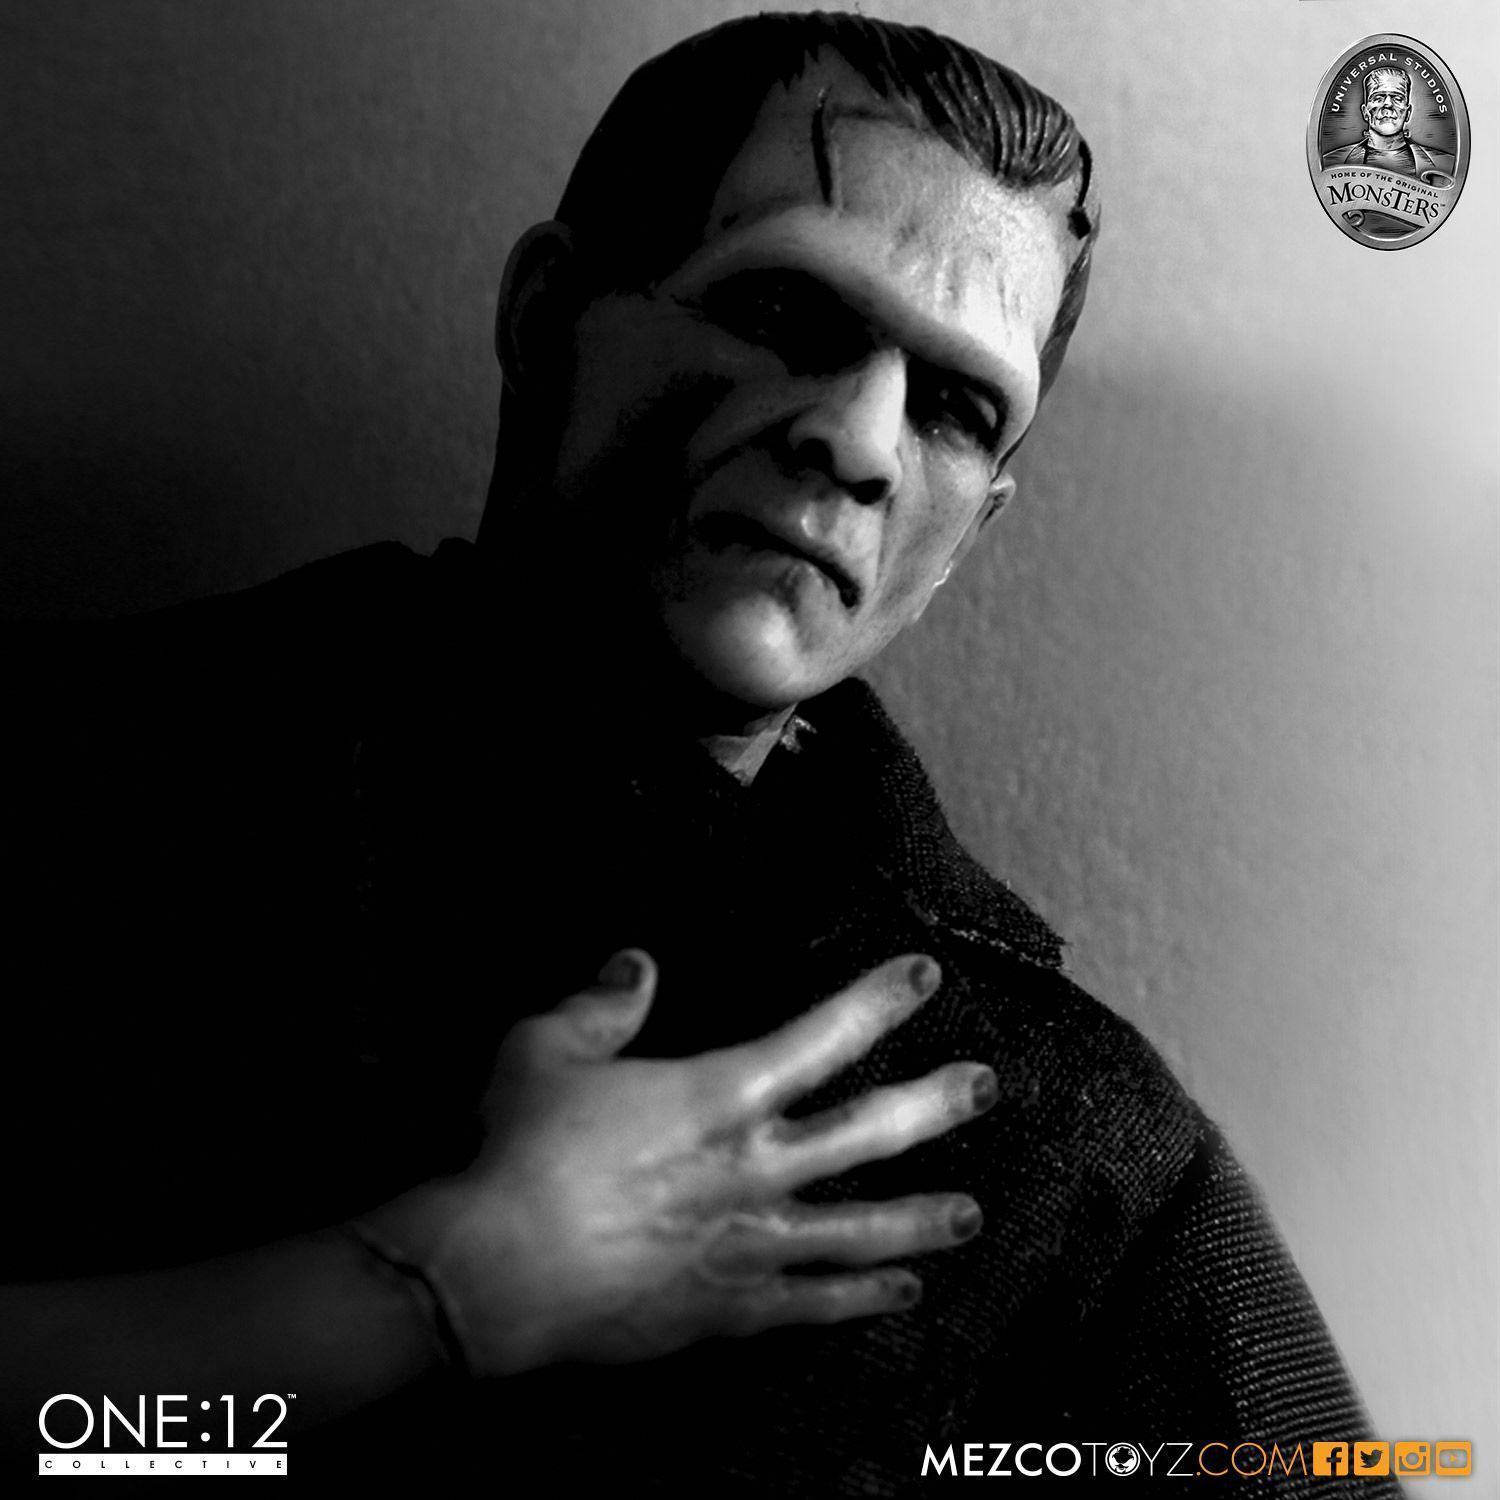 Universal-Monsters-Frankenstein-One12-Collective-Action-Figure-06